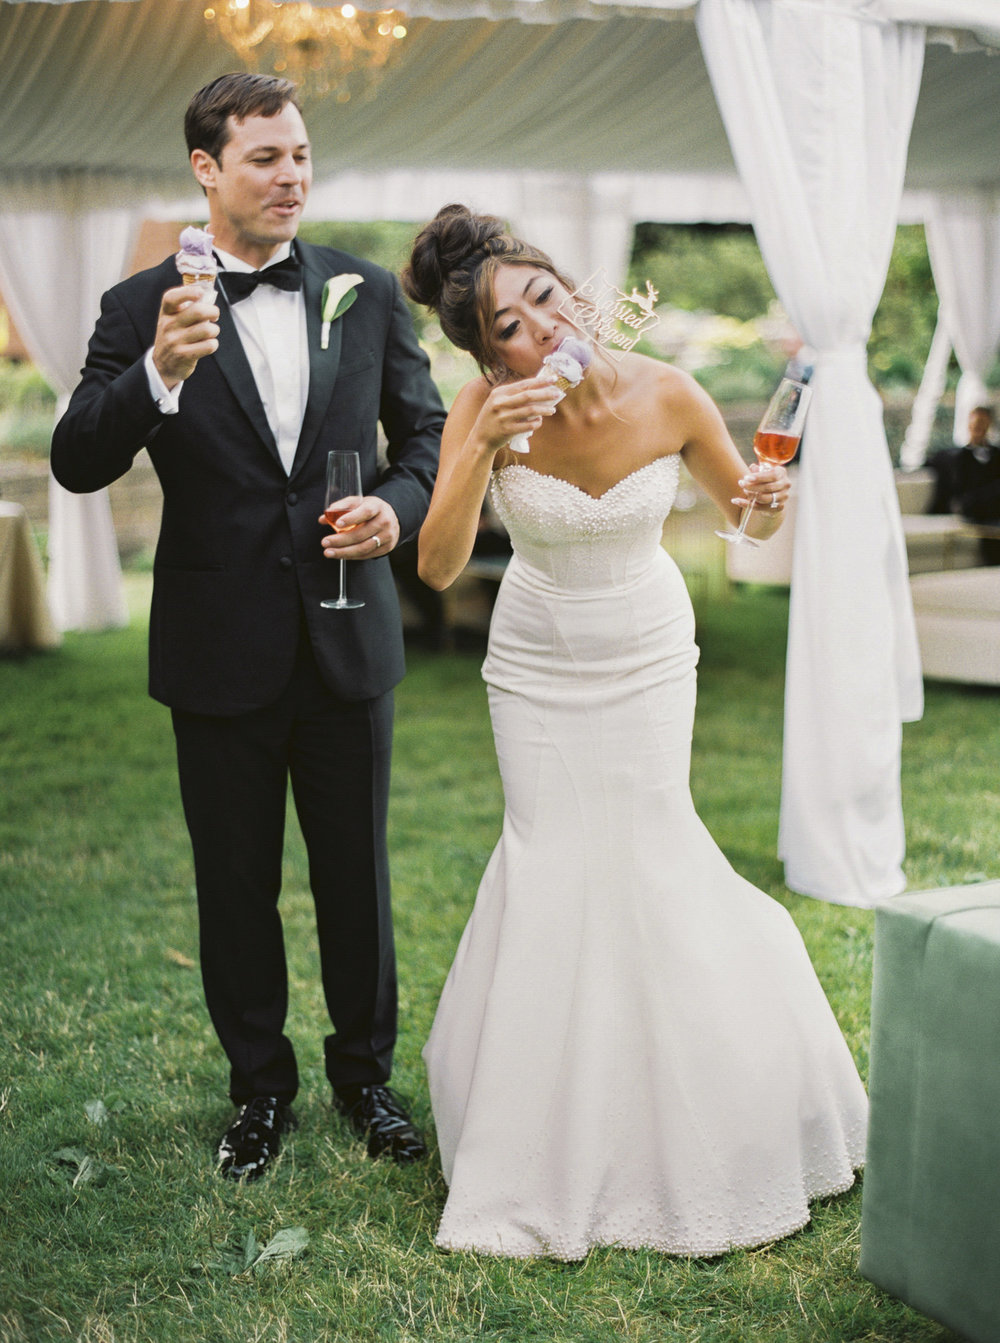 213OutliveCreative_Travel_Photographer_Videographer_Lewis&Clark_Oregon_Elegant_BlackTie_Destination_Wedding.jpg